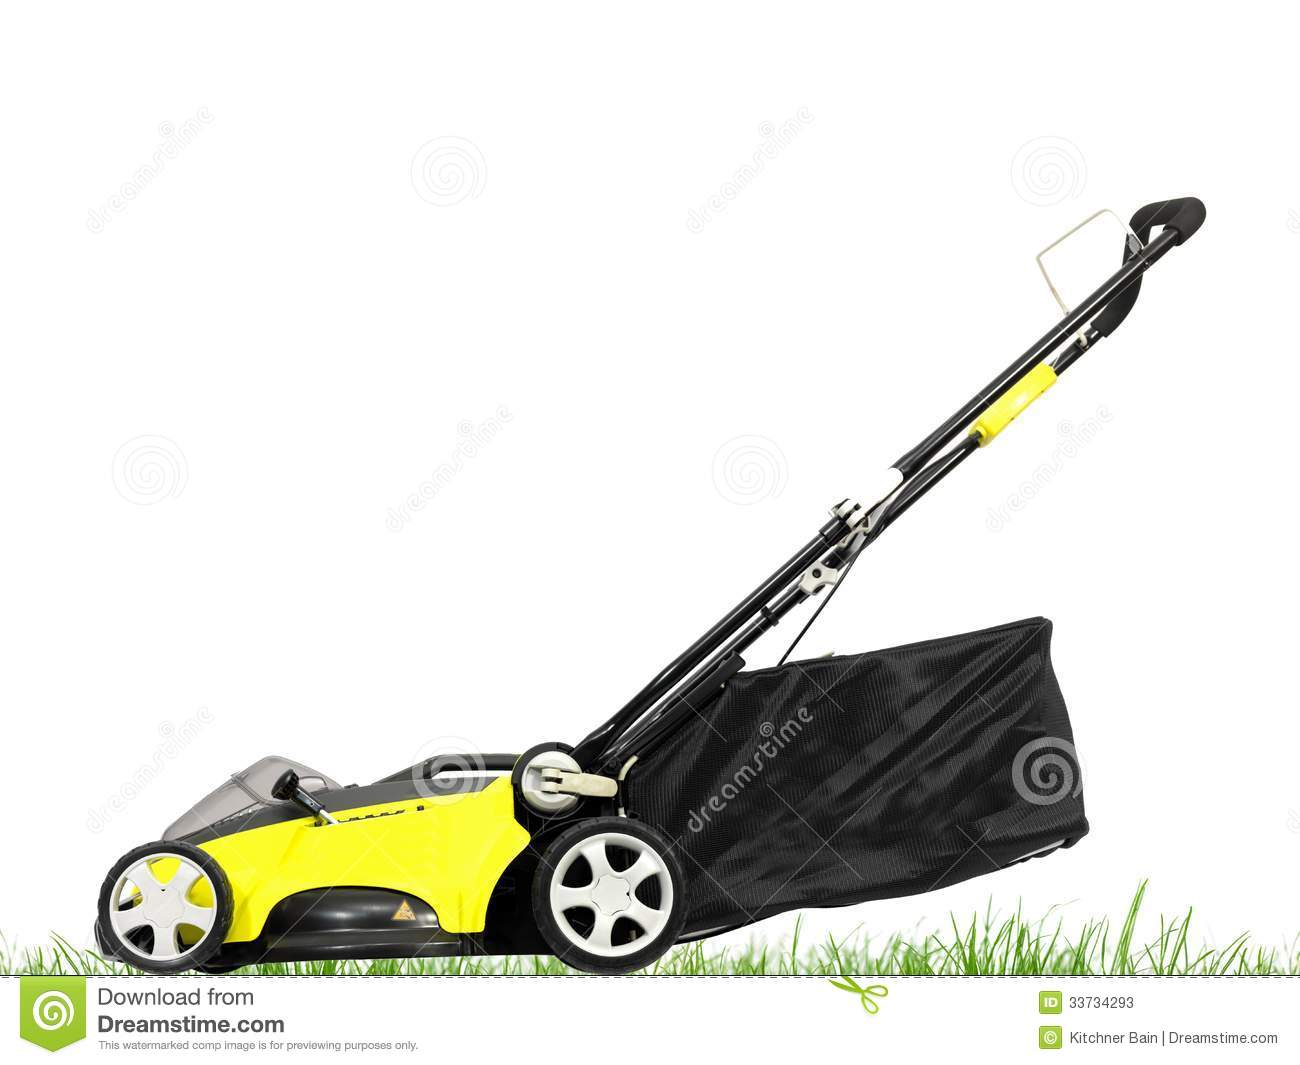 Rechargable Lawn Mower On A White Background Mr No Pr No 0 235 0